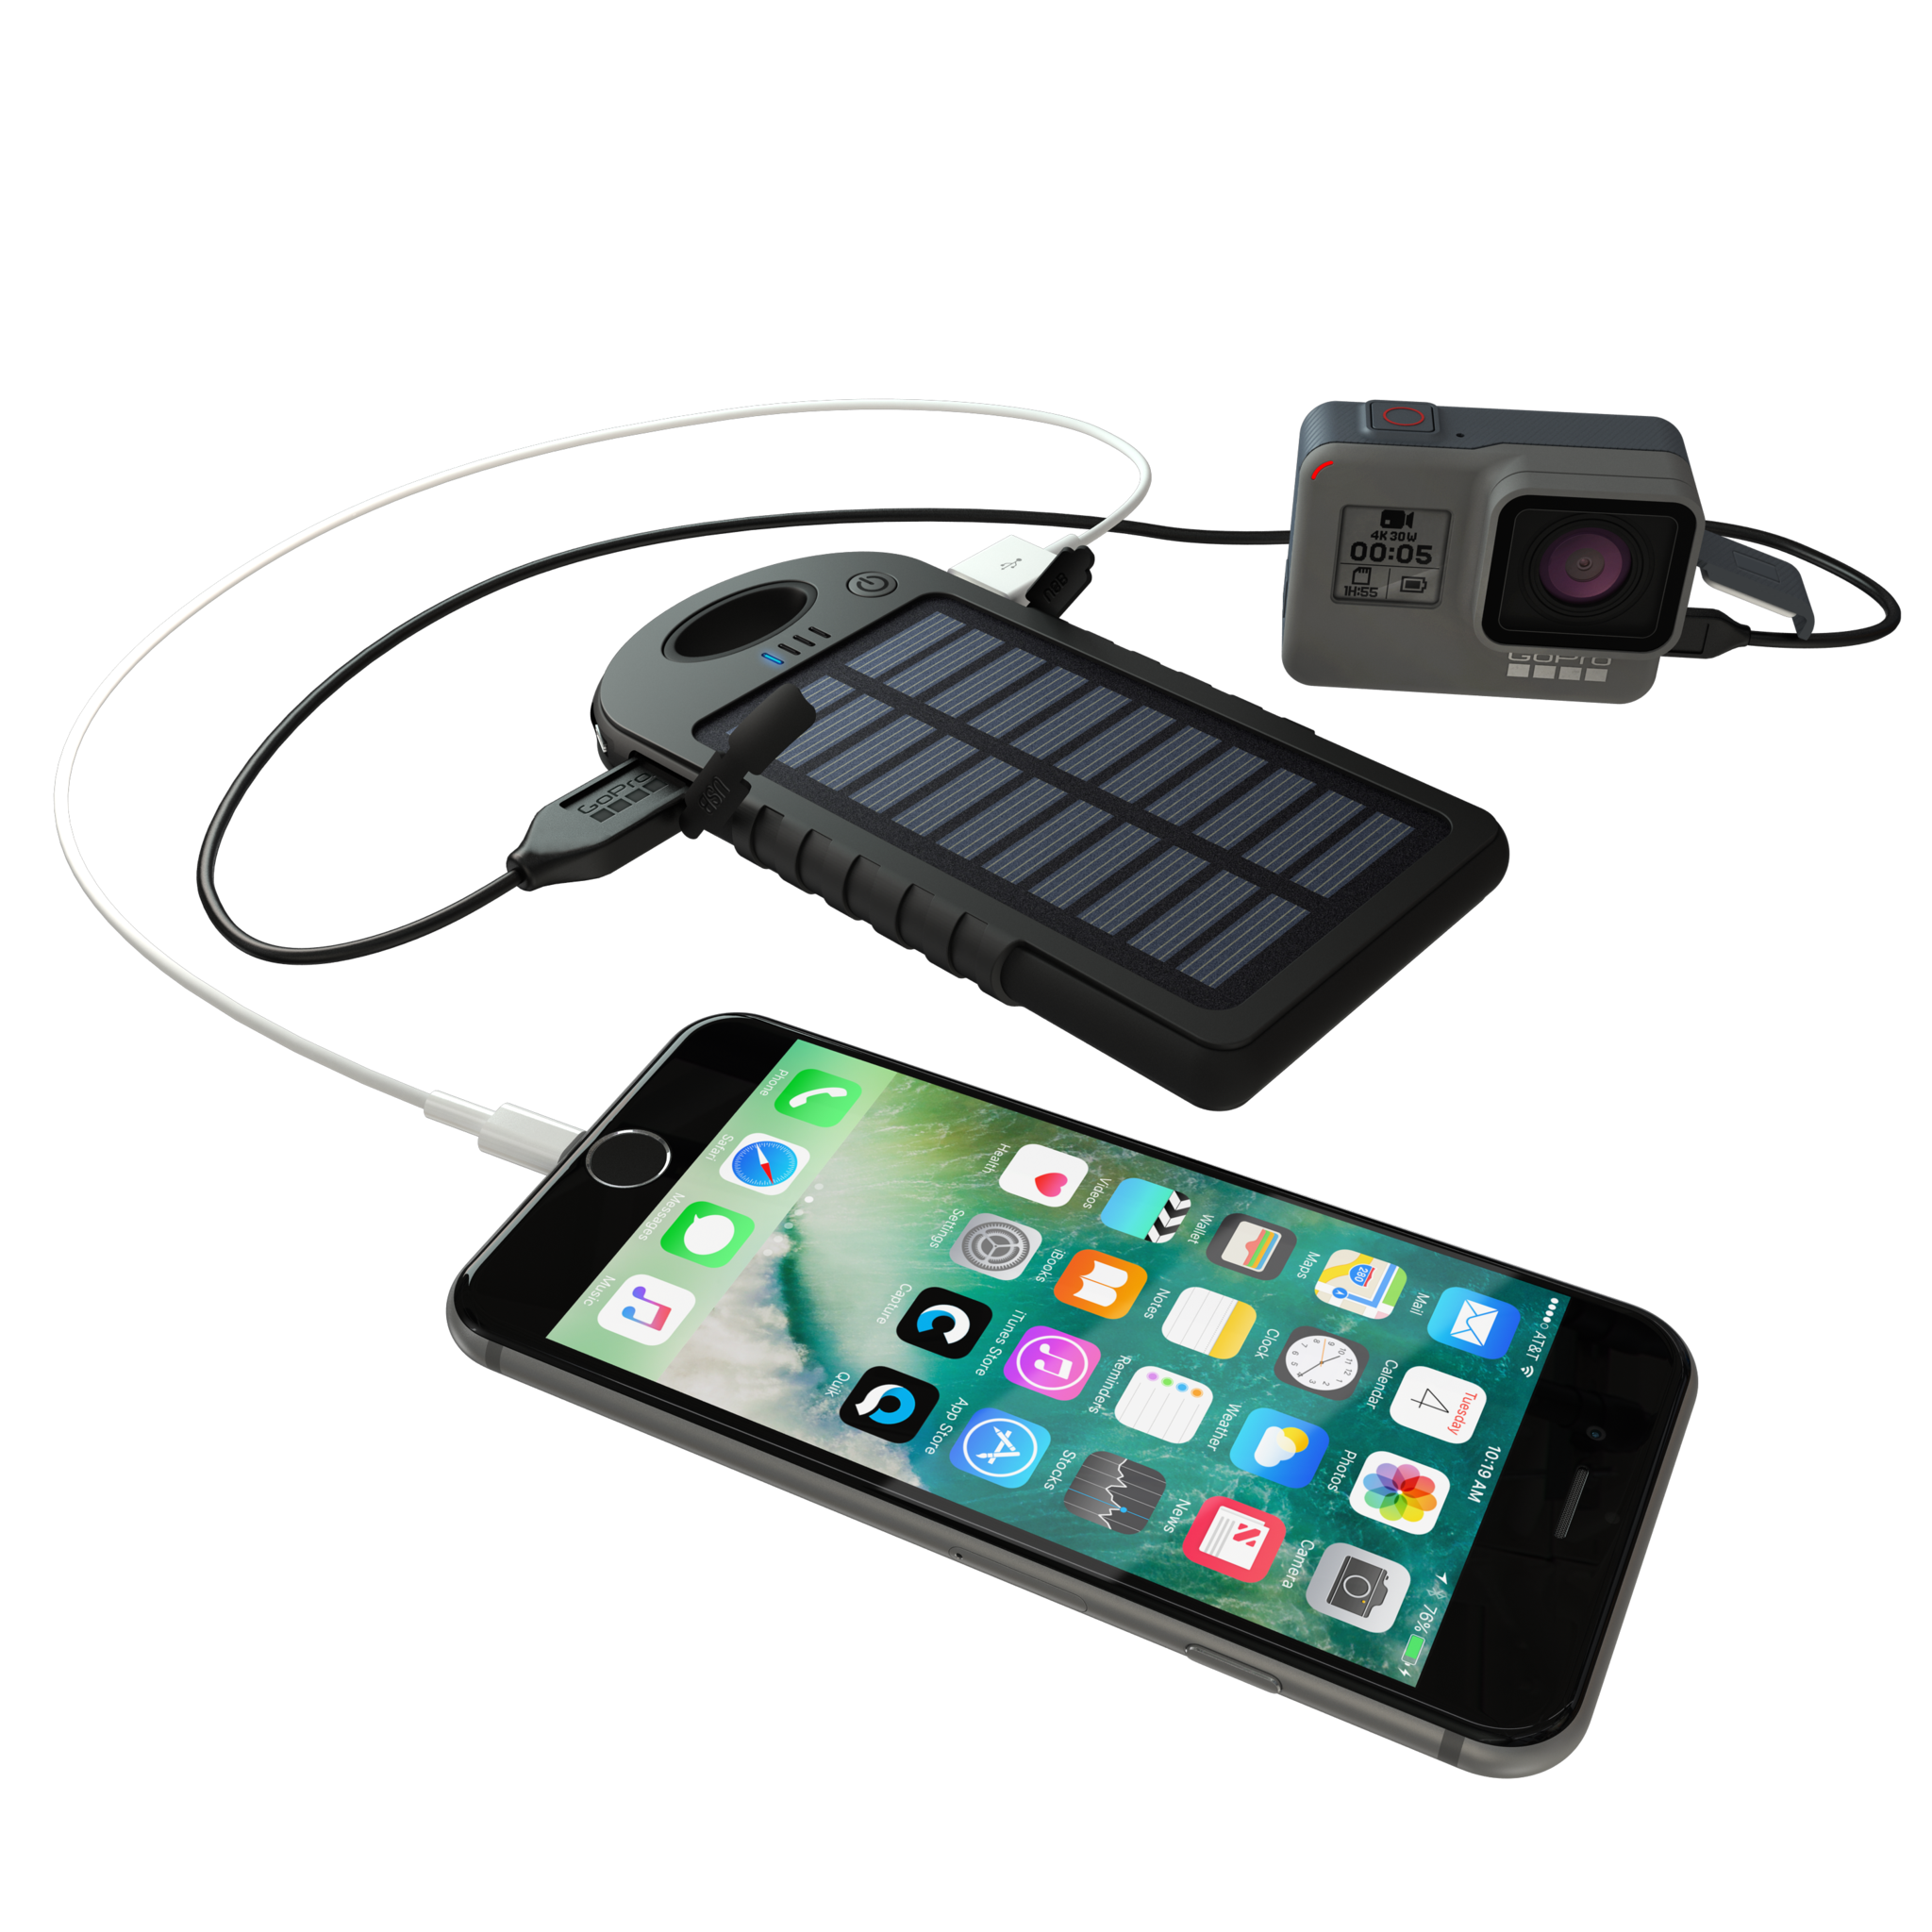 Dualcharge Gopro Amp Mobile Usb Power Bank Solar Charger